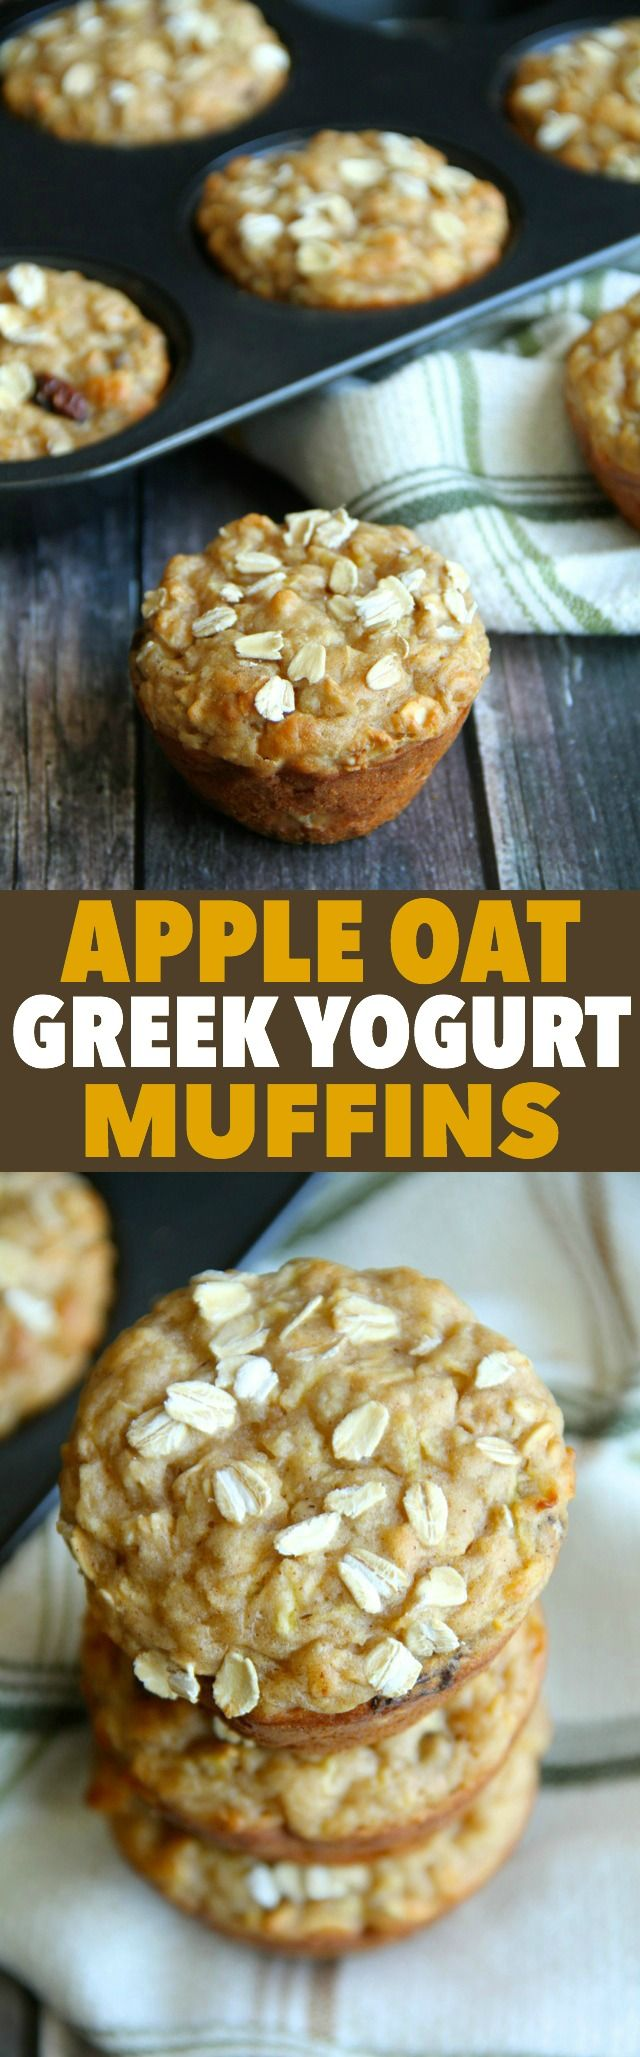 Apple Oat Greek Yogurt Muffins -- ridiculously soft and tender with NO butter or oil! A perfect breakfast or snack! || runningwithspoons.com #healthy #apple #muffins - substitute cooked apples for apple sauce